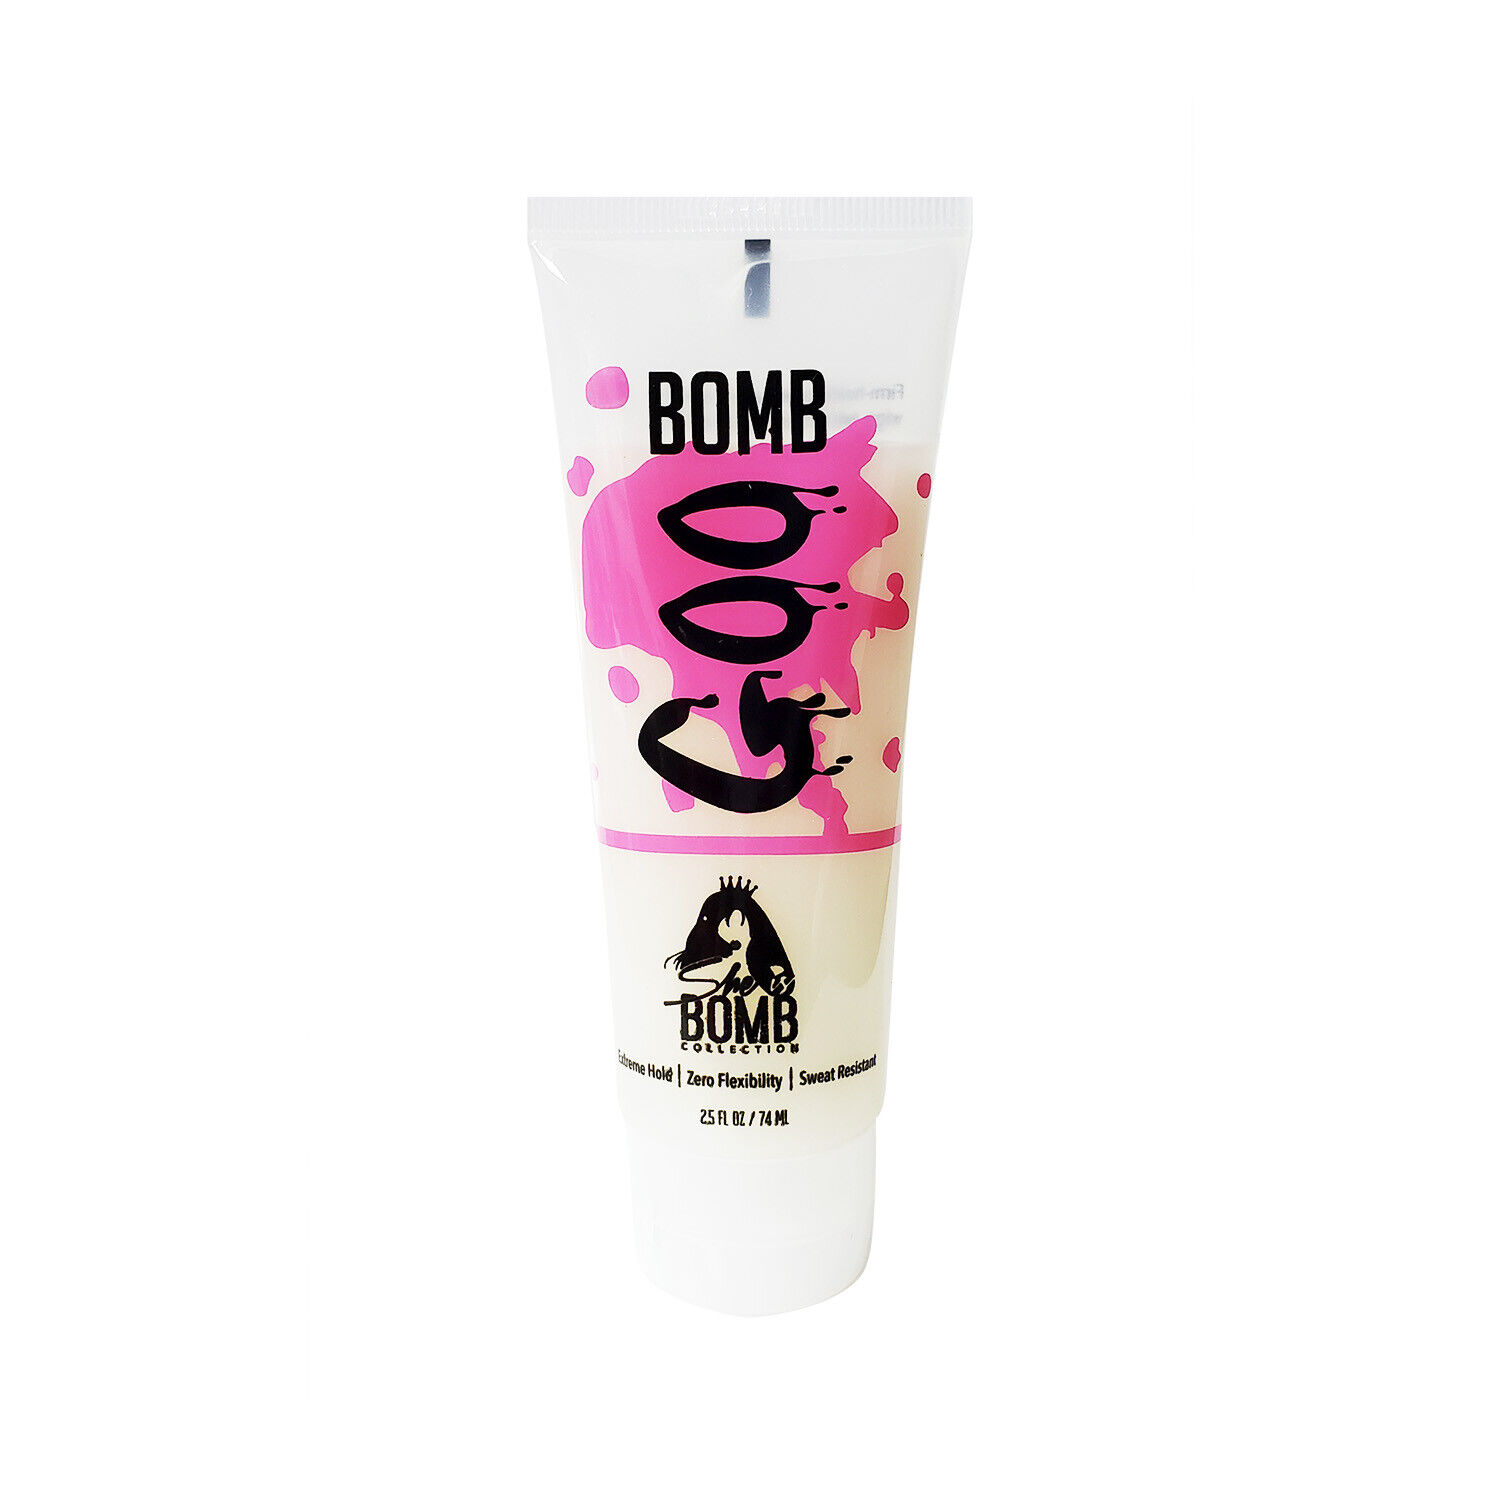 She Is Bomb Collection Bomb Goo 2.5oz Hair Care & Styling